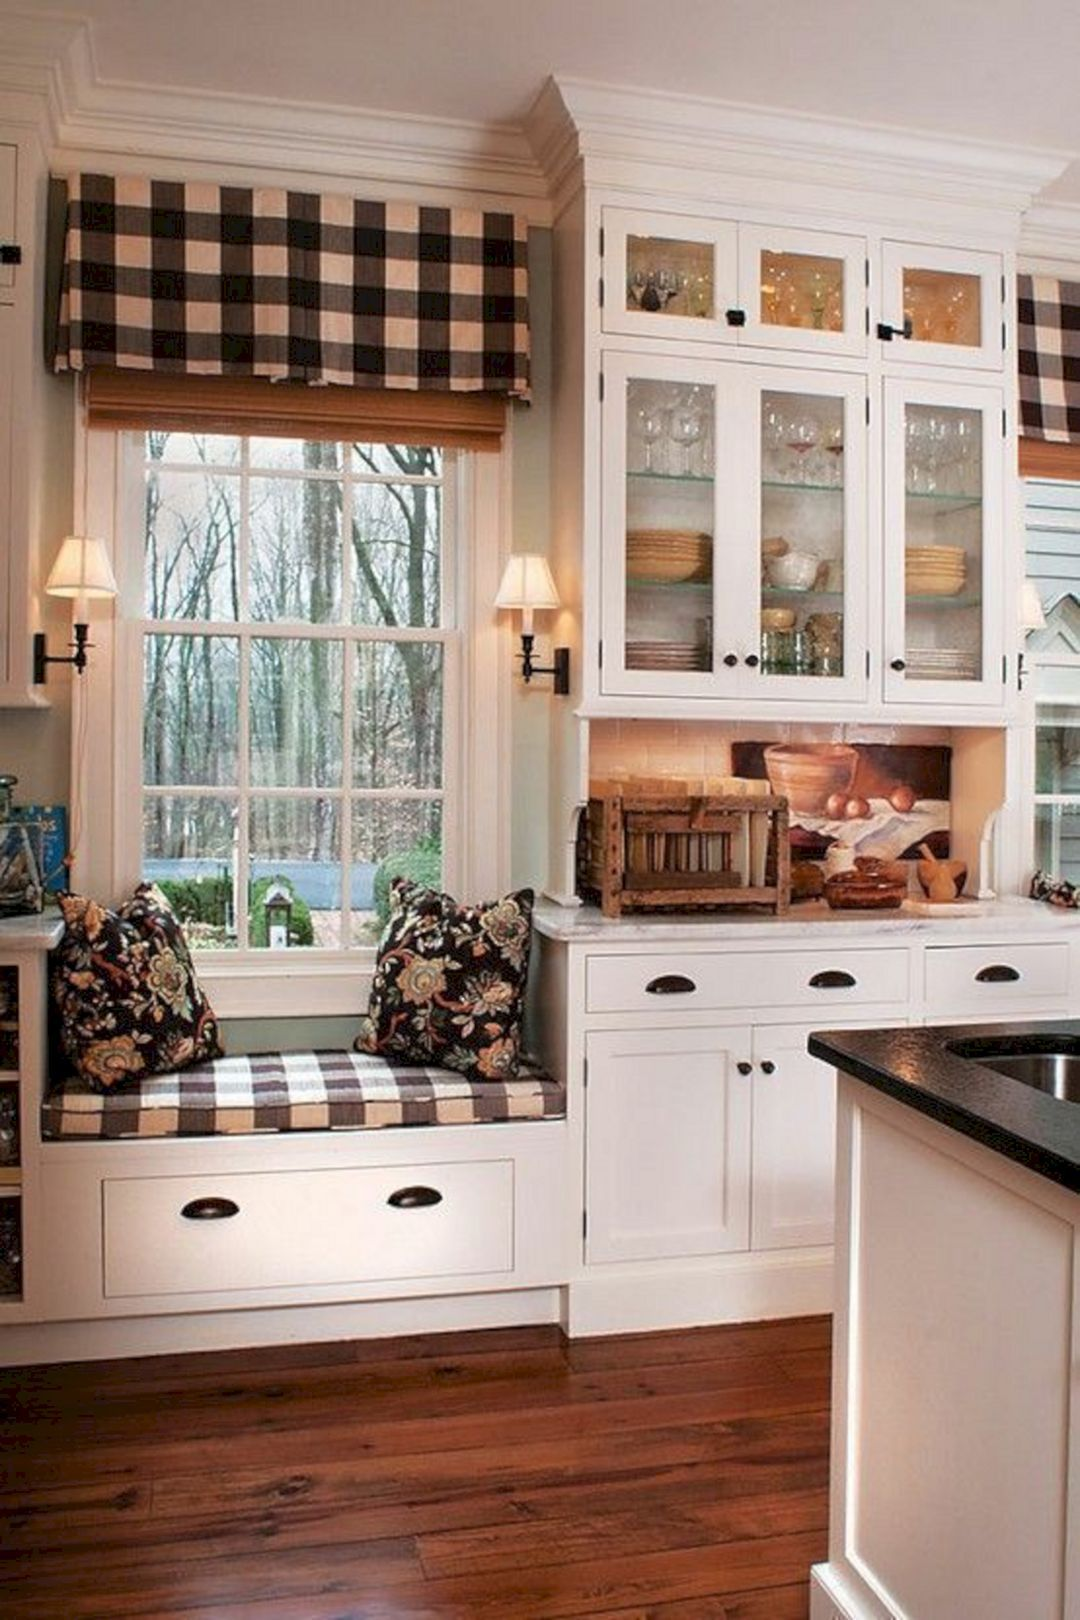 Neue Küche Landhausstil Awesome Farmhouse Kitchen Design Ideas 75 43 Pictures